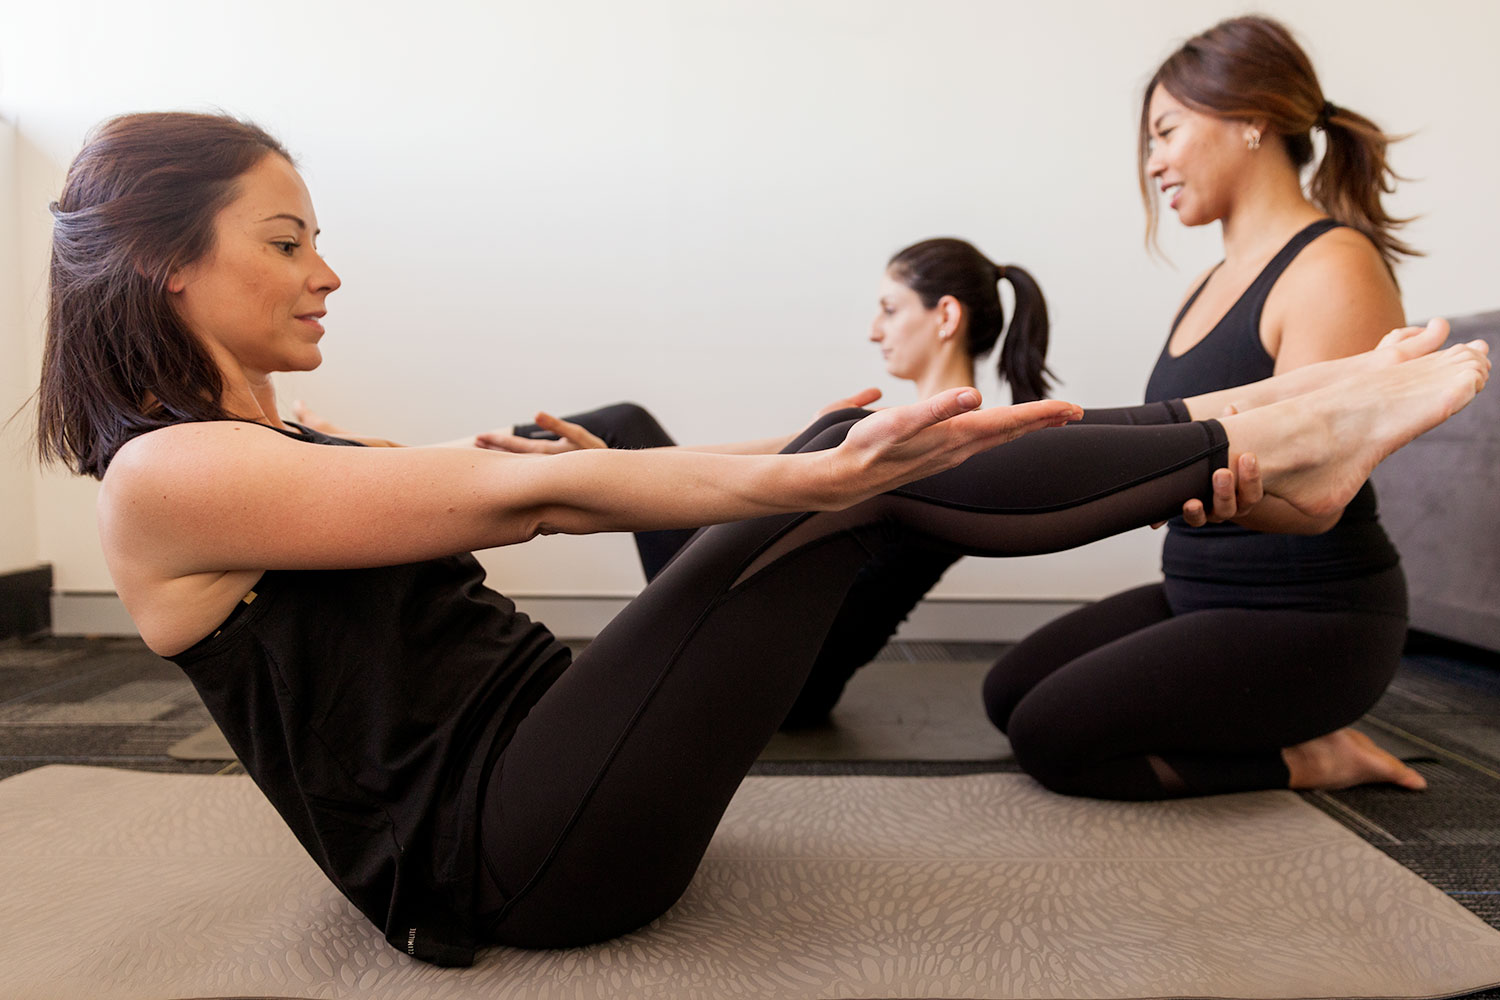 NEW TO PILATES? - Pilates is advantageous for those nursing an injury, for pre and post natal women and those new or coming back to exercise.Pilates looks at the body as a whole while concentrating on biomechanics with a focus on improving core strength and posture.Once called Contrology, this method of exercise was invented by a man named Joseph Pilates. His intention was to help injured dancers and soldiers consciously control muscle movement through the awareness of breathing. Book in a complimentary session with Jessie today to see if Pilates is right for you.